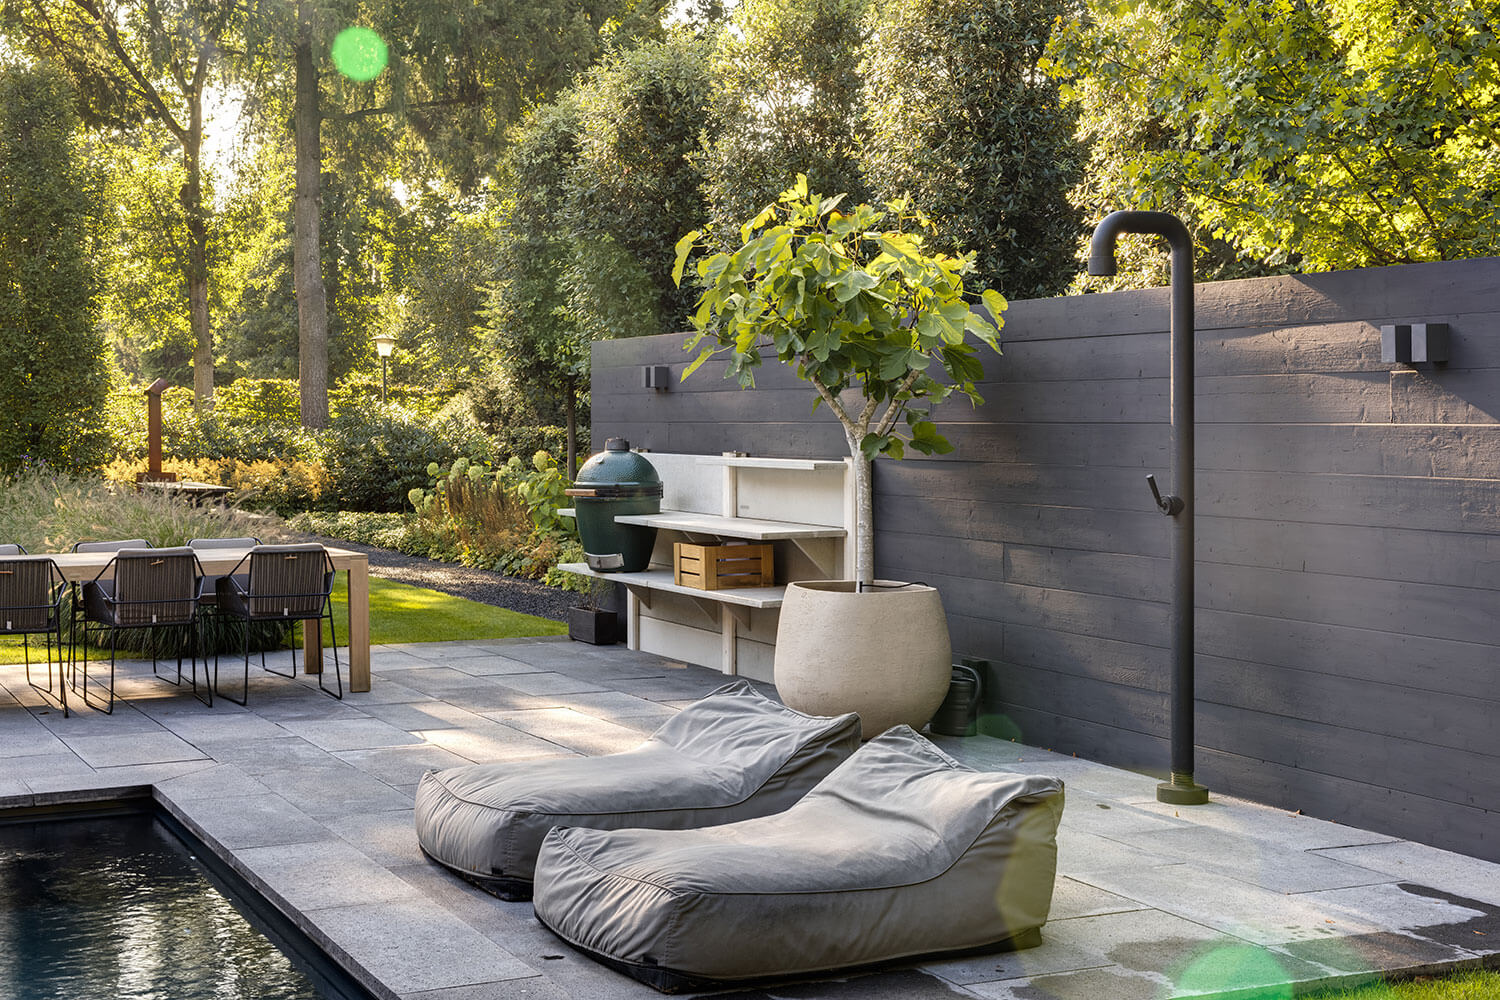 The-Garden-Store-Tuin-Interieur-Plantstyling-Tuinstyling-Esther-Biesot-buitendouche